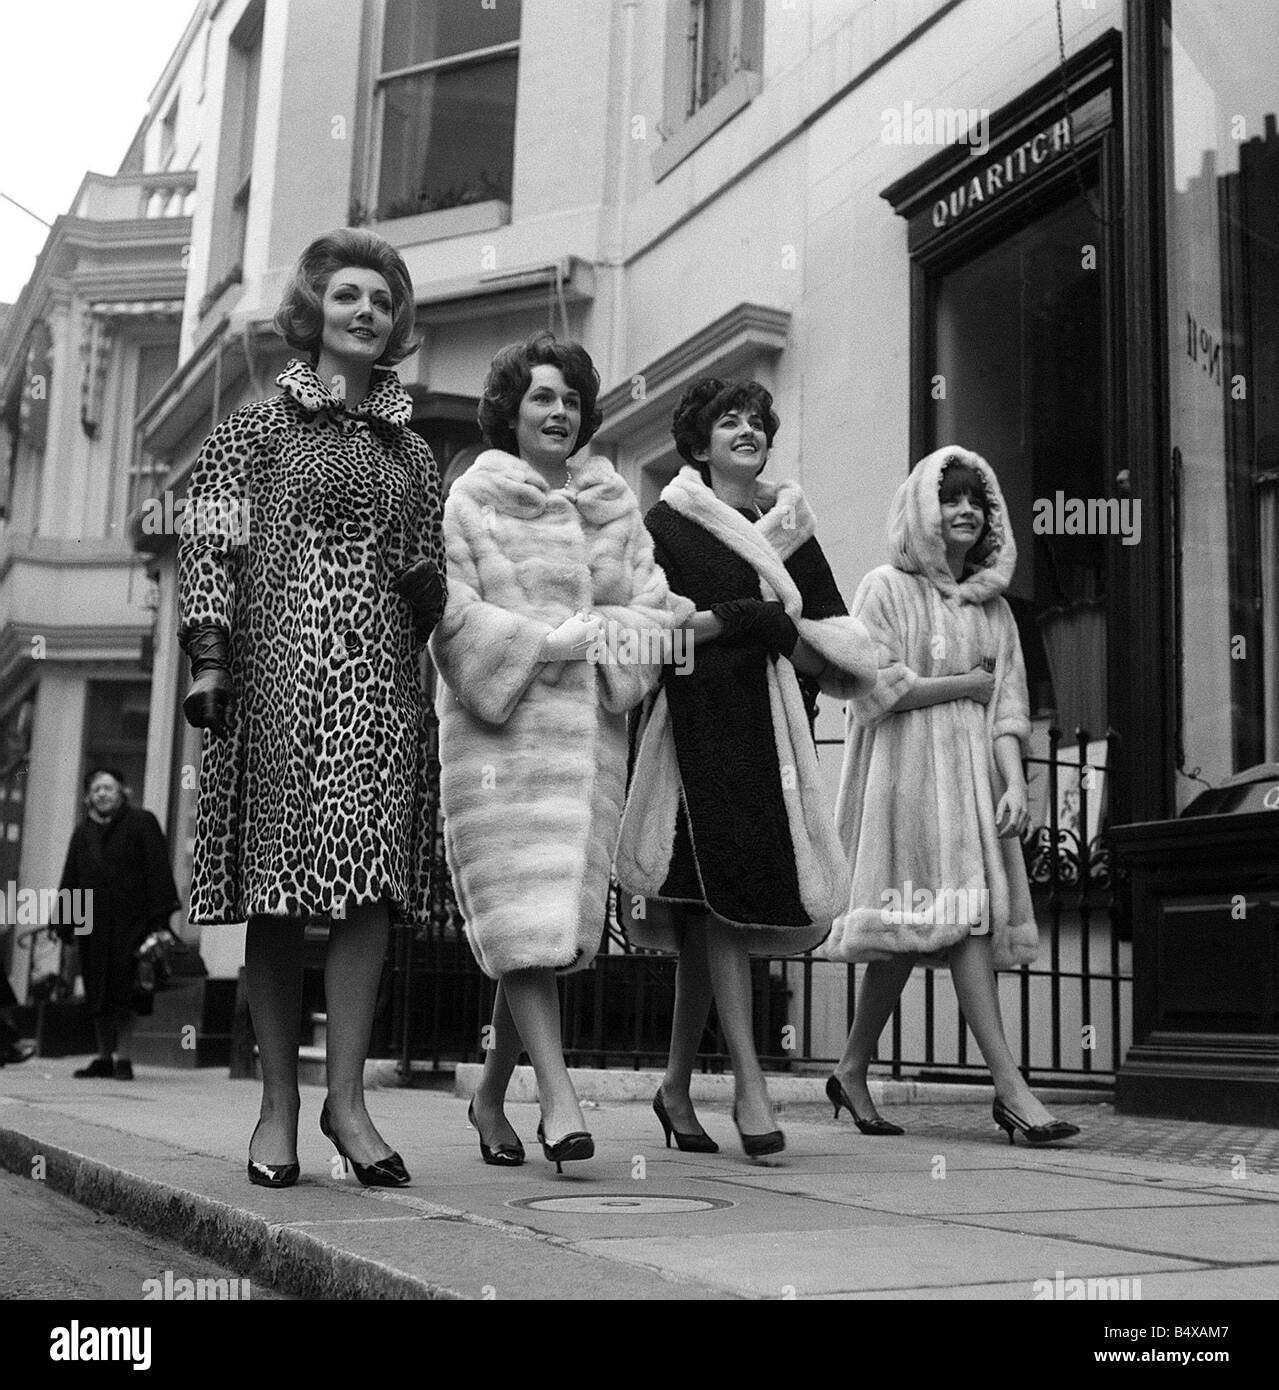 Fashion Fur Coats Feb 1962 Models In The West End Of